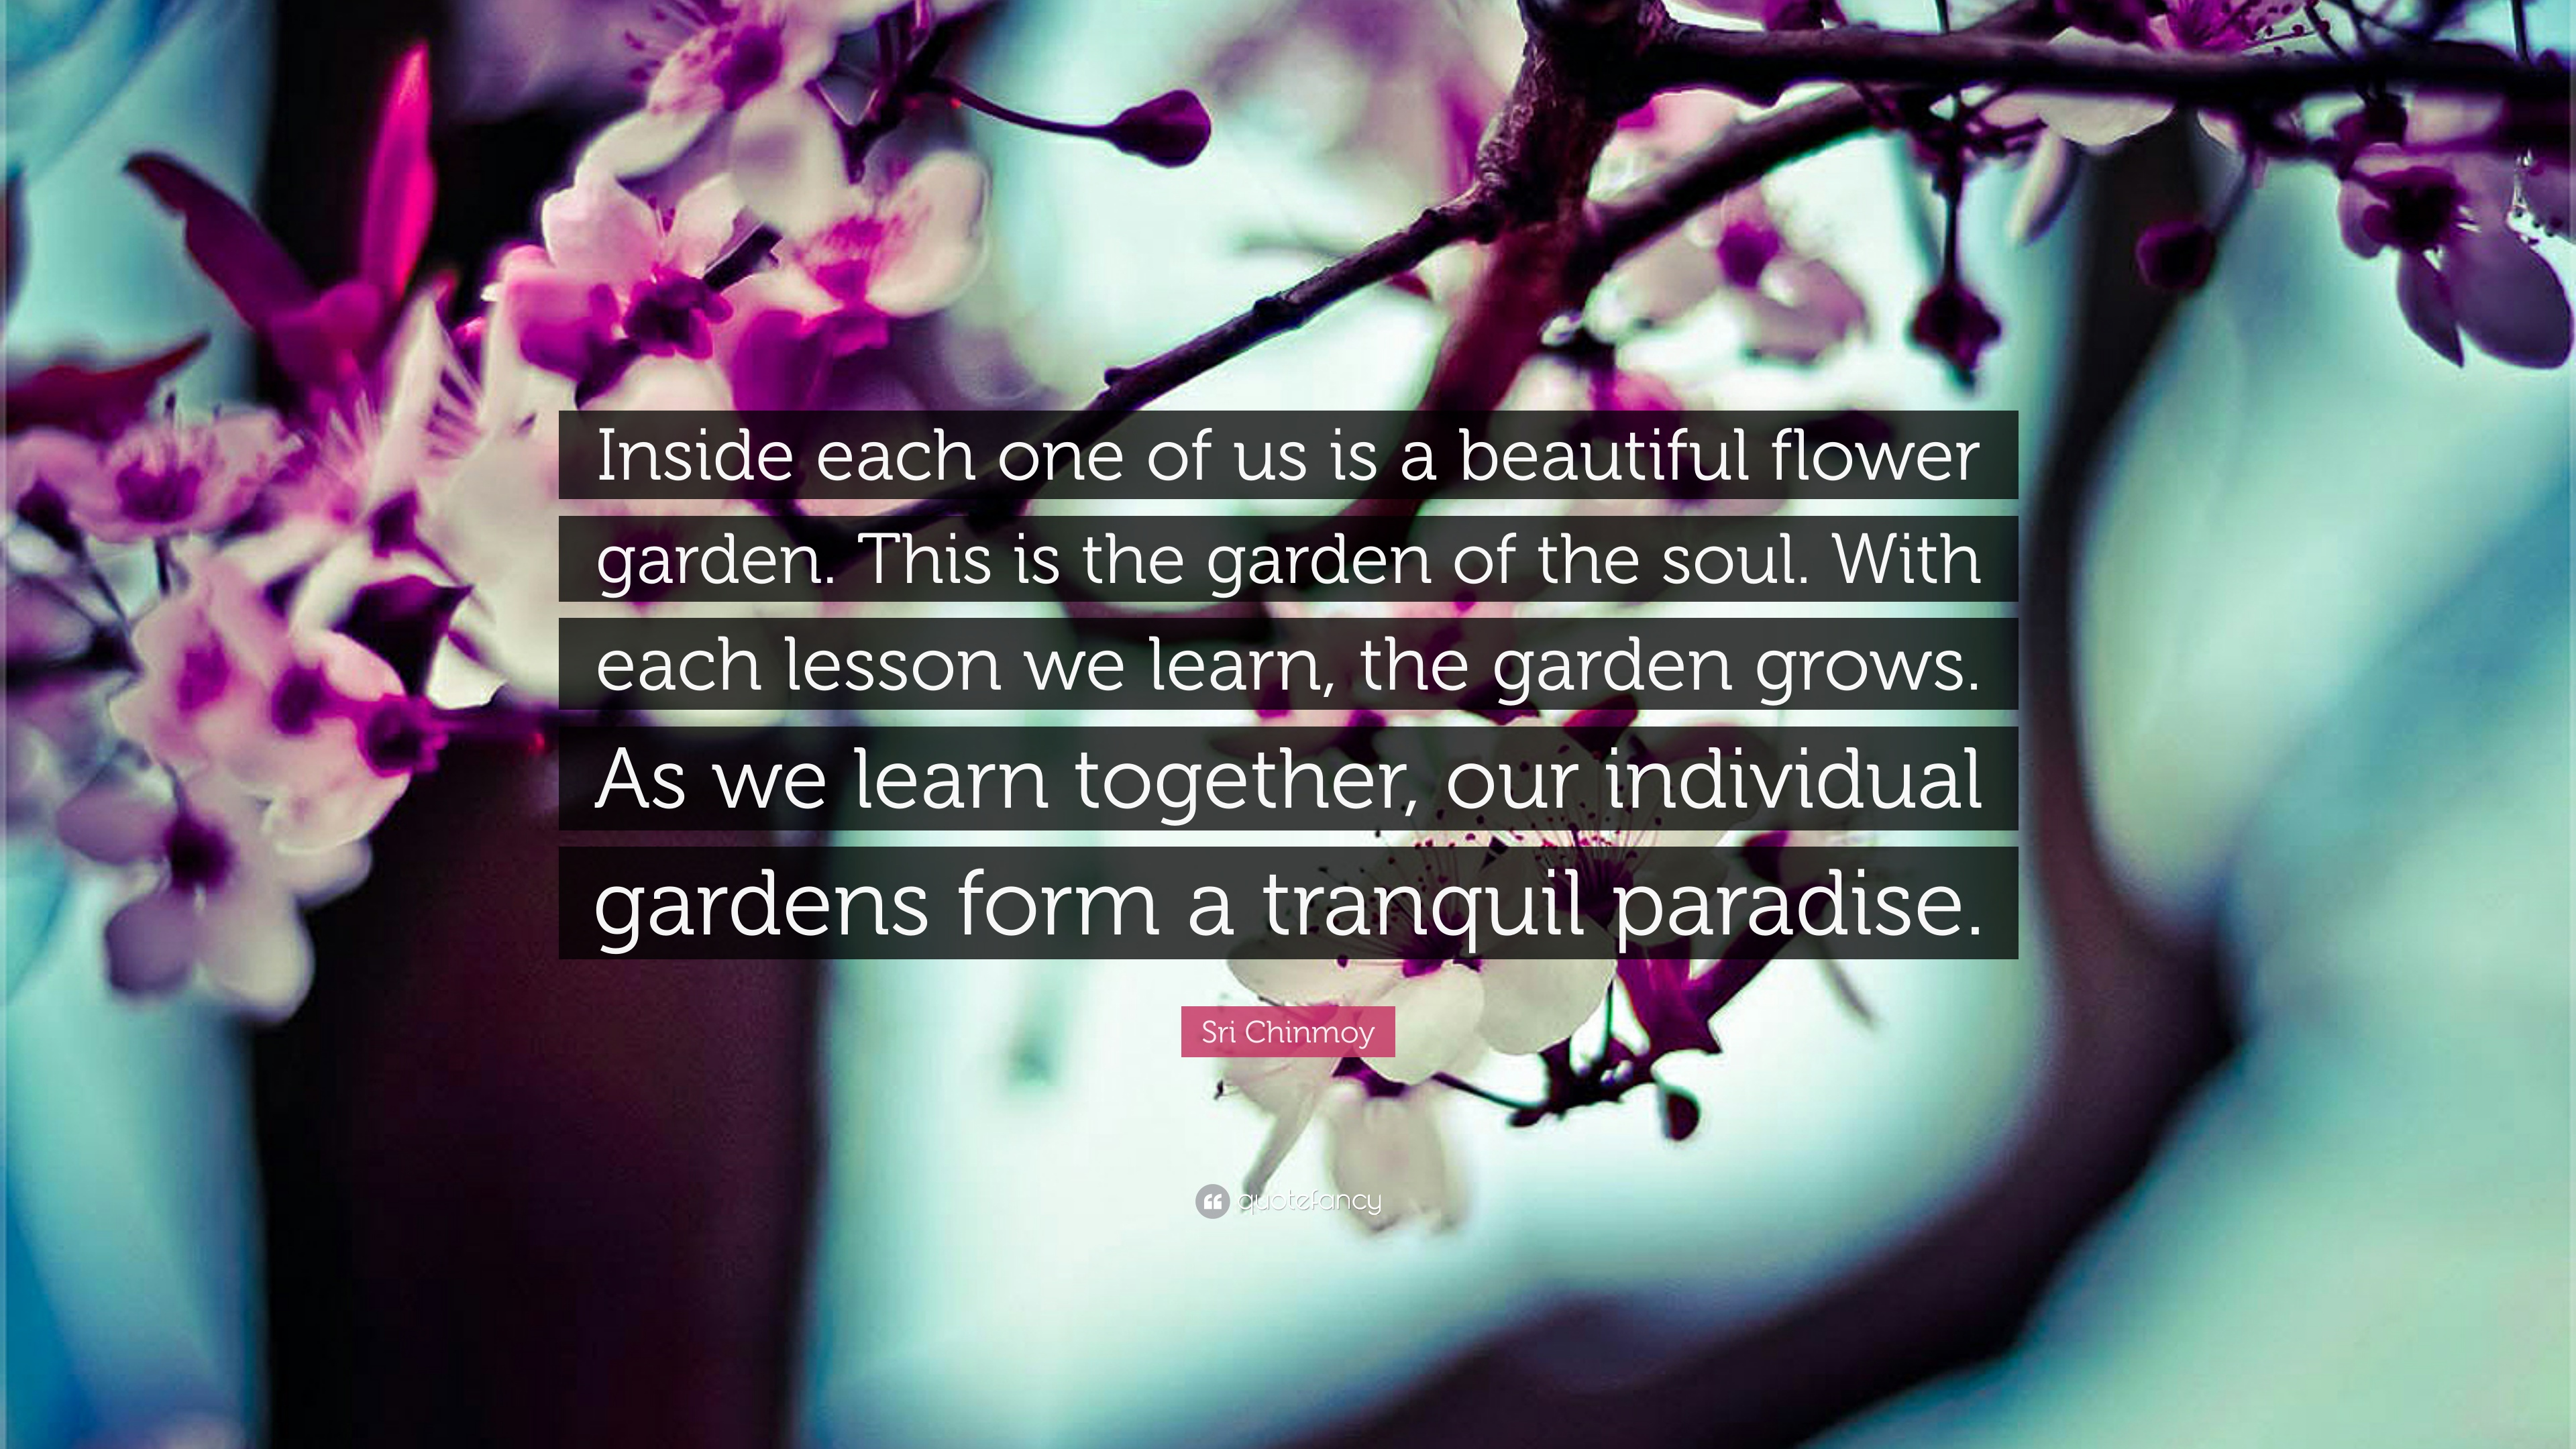 Sri chinmoy quote inside each one of us is a beautiful flower sri chinmoy quote inside each one of us is a beautiful flower garden izmirmasajfo